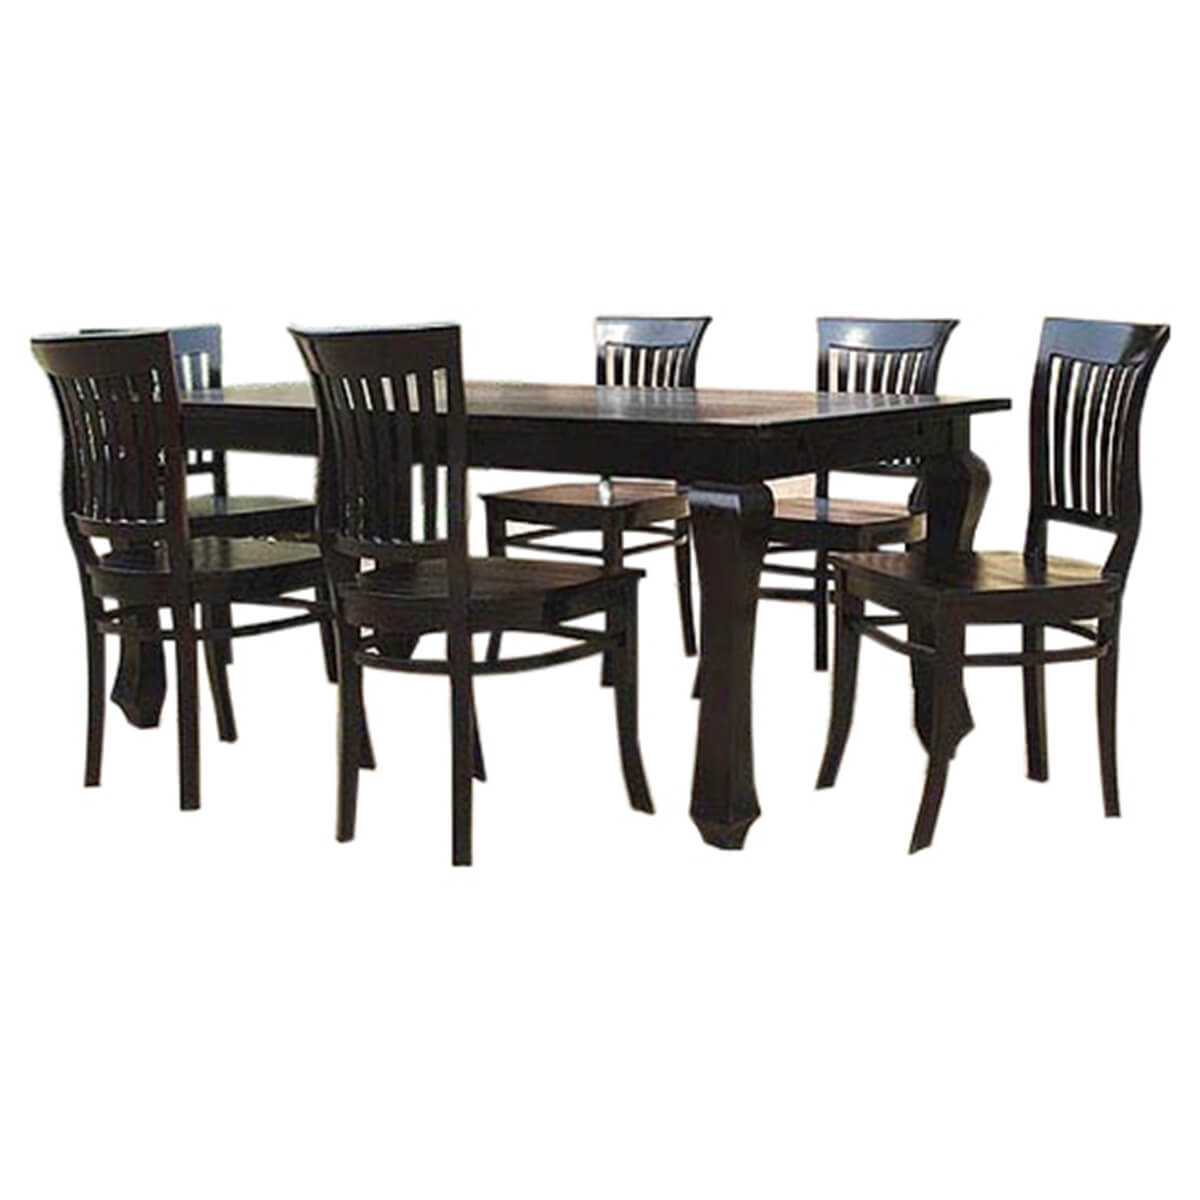 Solid Wood Kitchen Tables: Kansas City Solid Wood Kitchen Dining Table With School